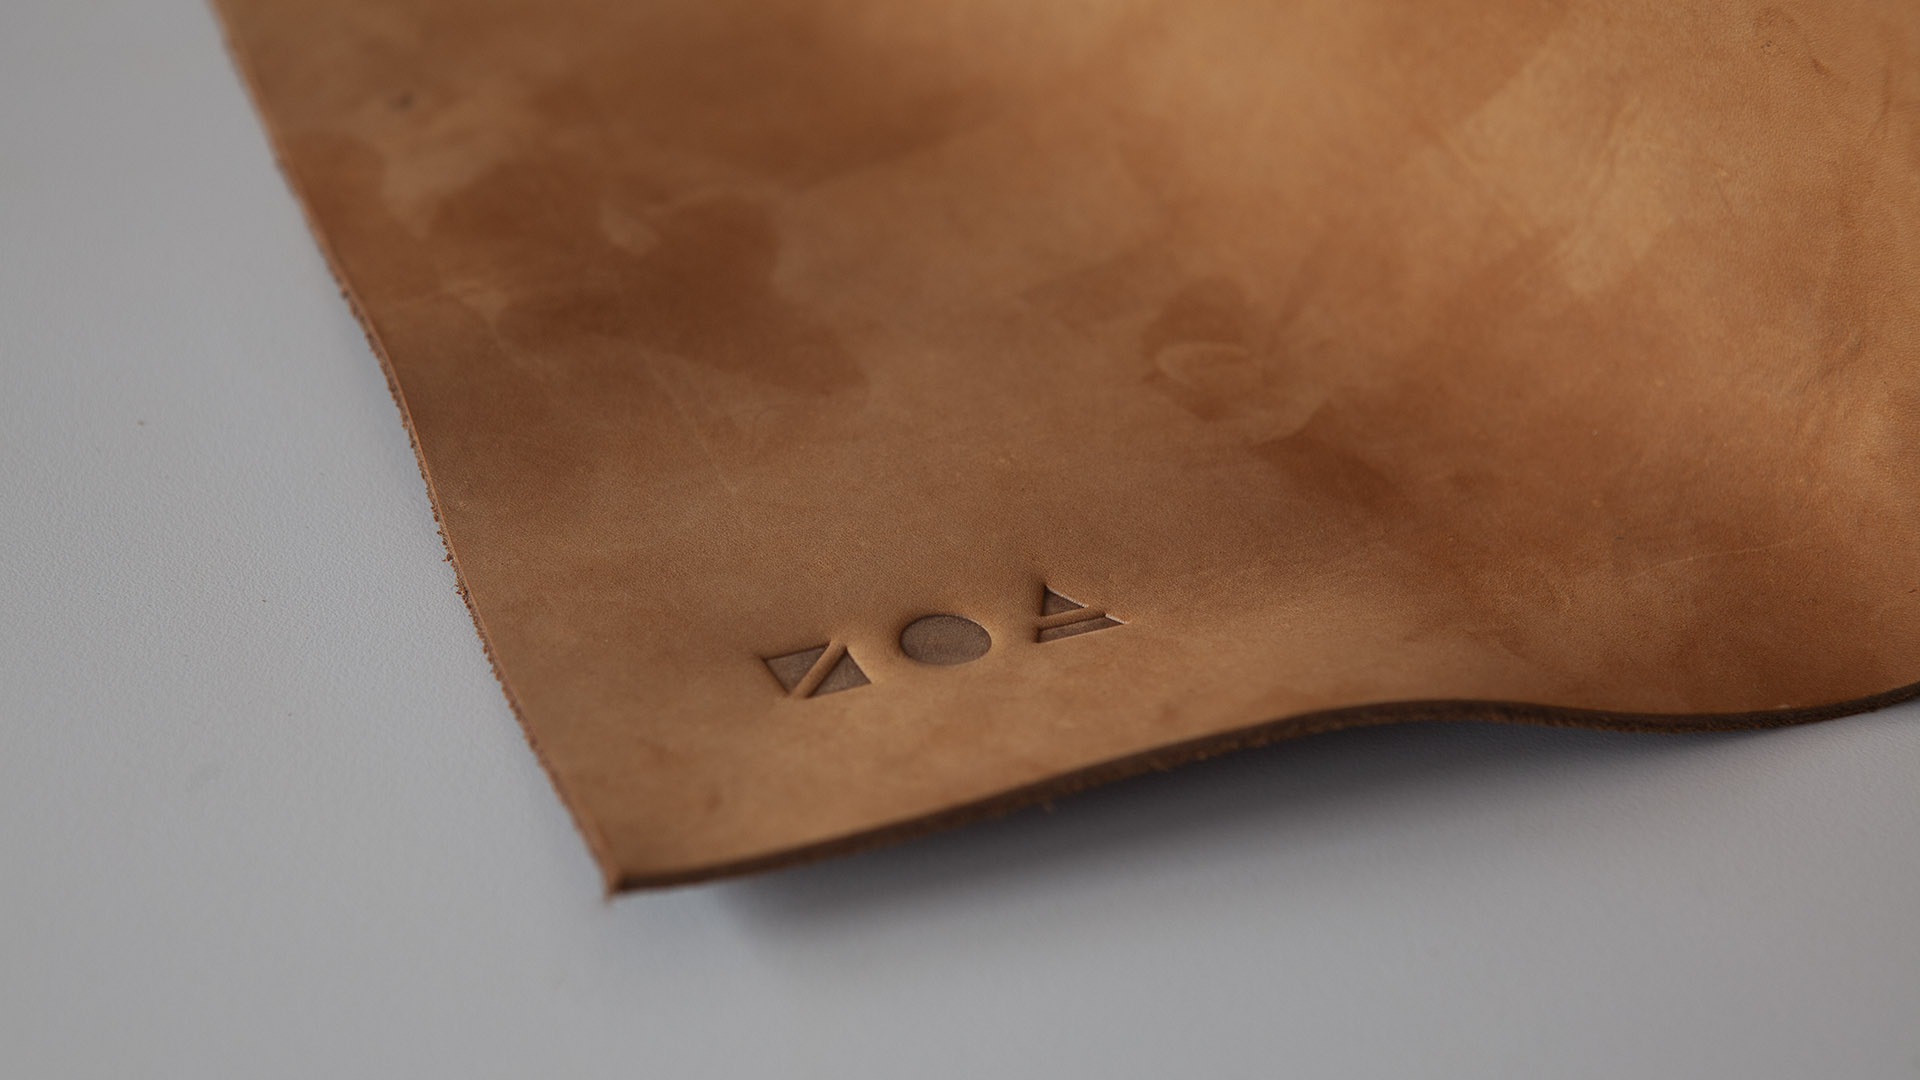 Zoa logo embossed on leather